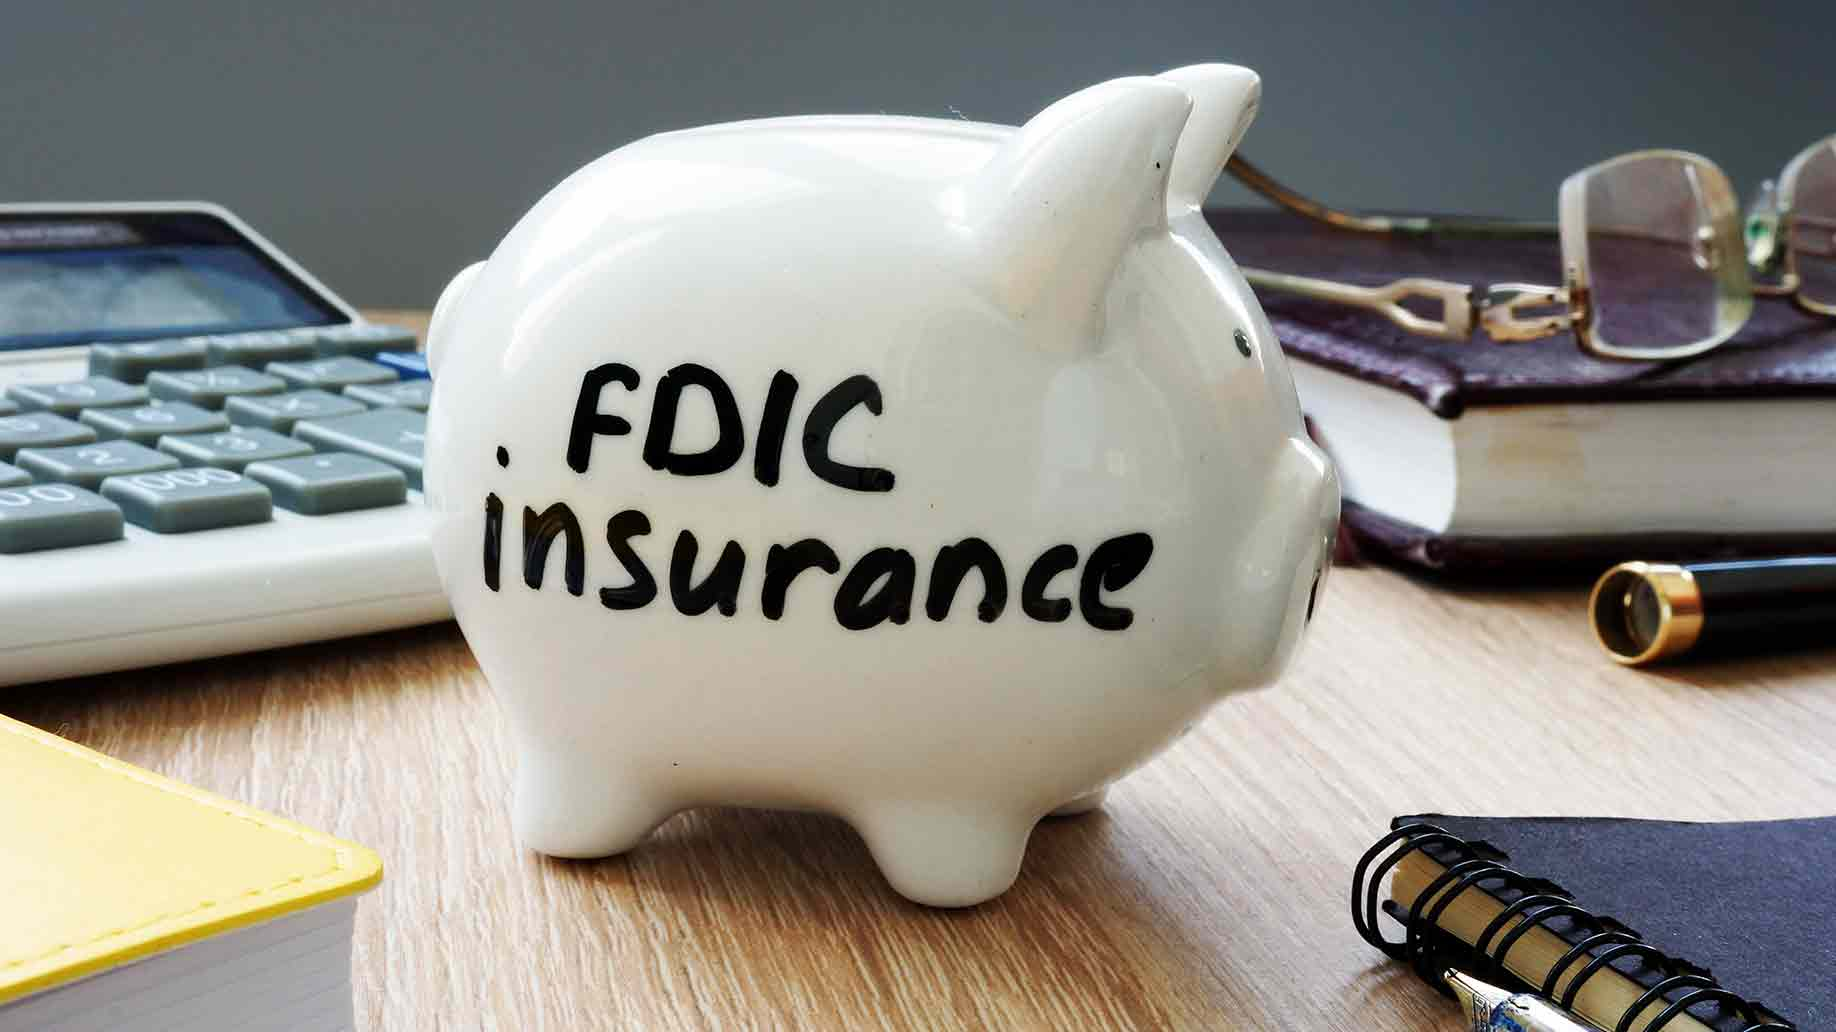 fdic insurance policy piggy bank in office desk